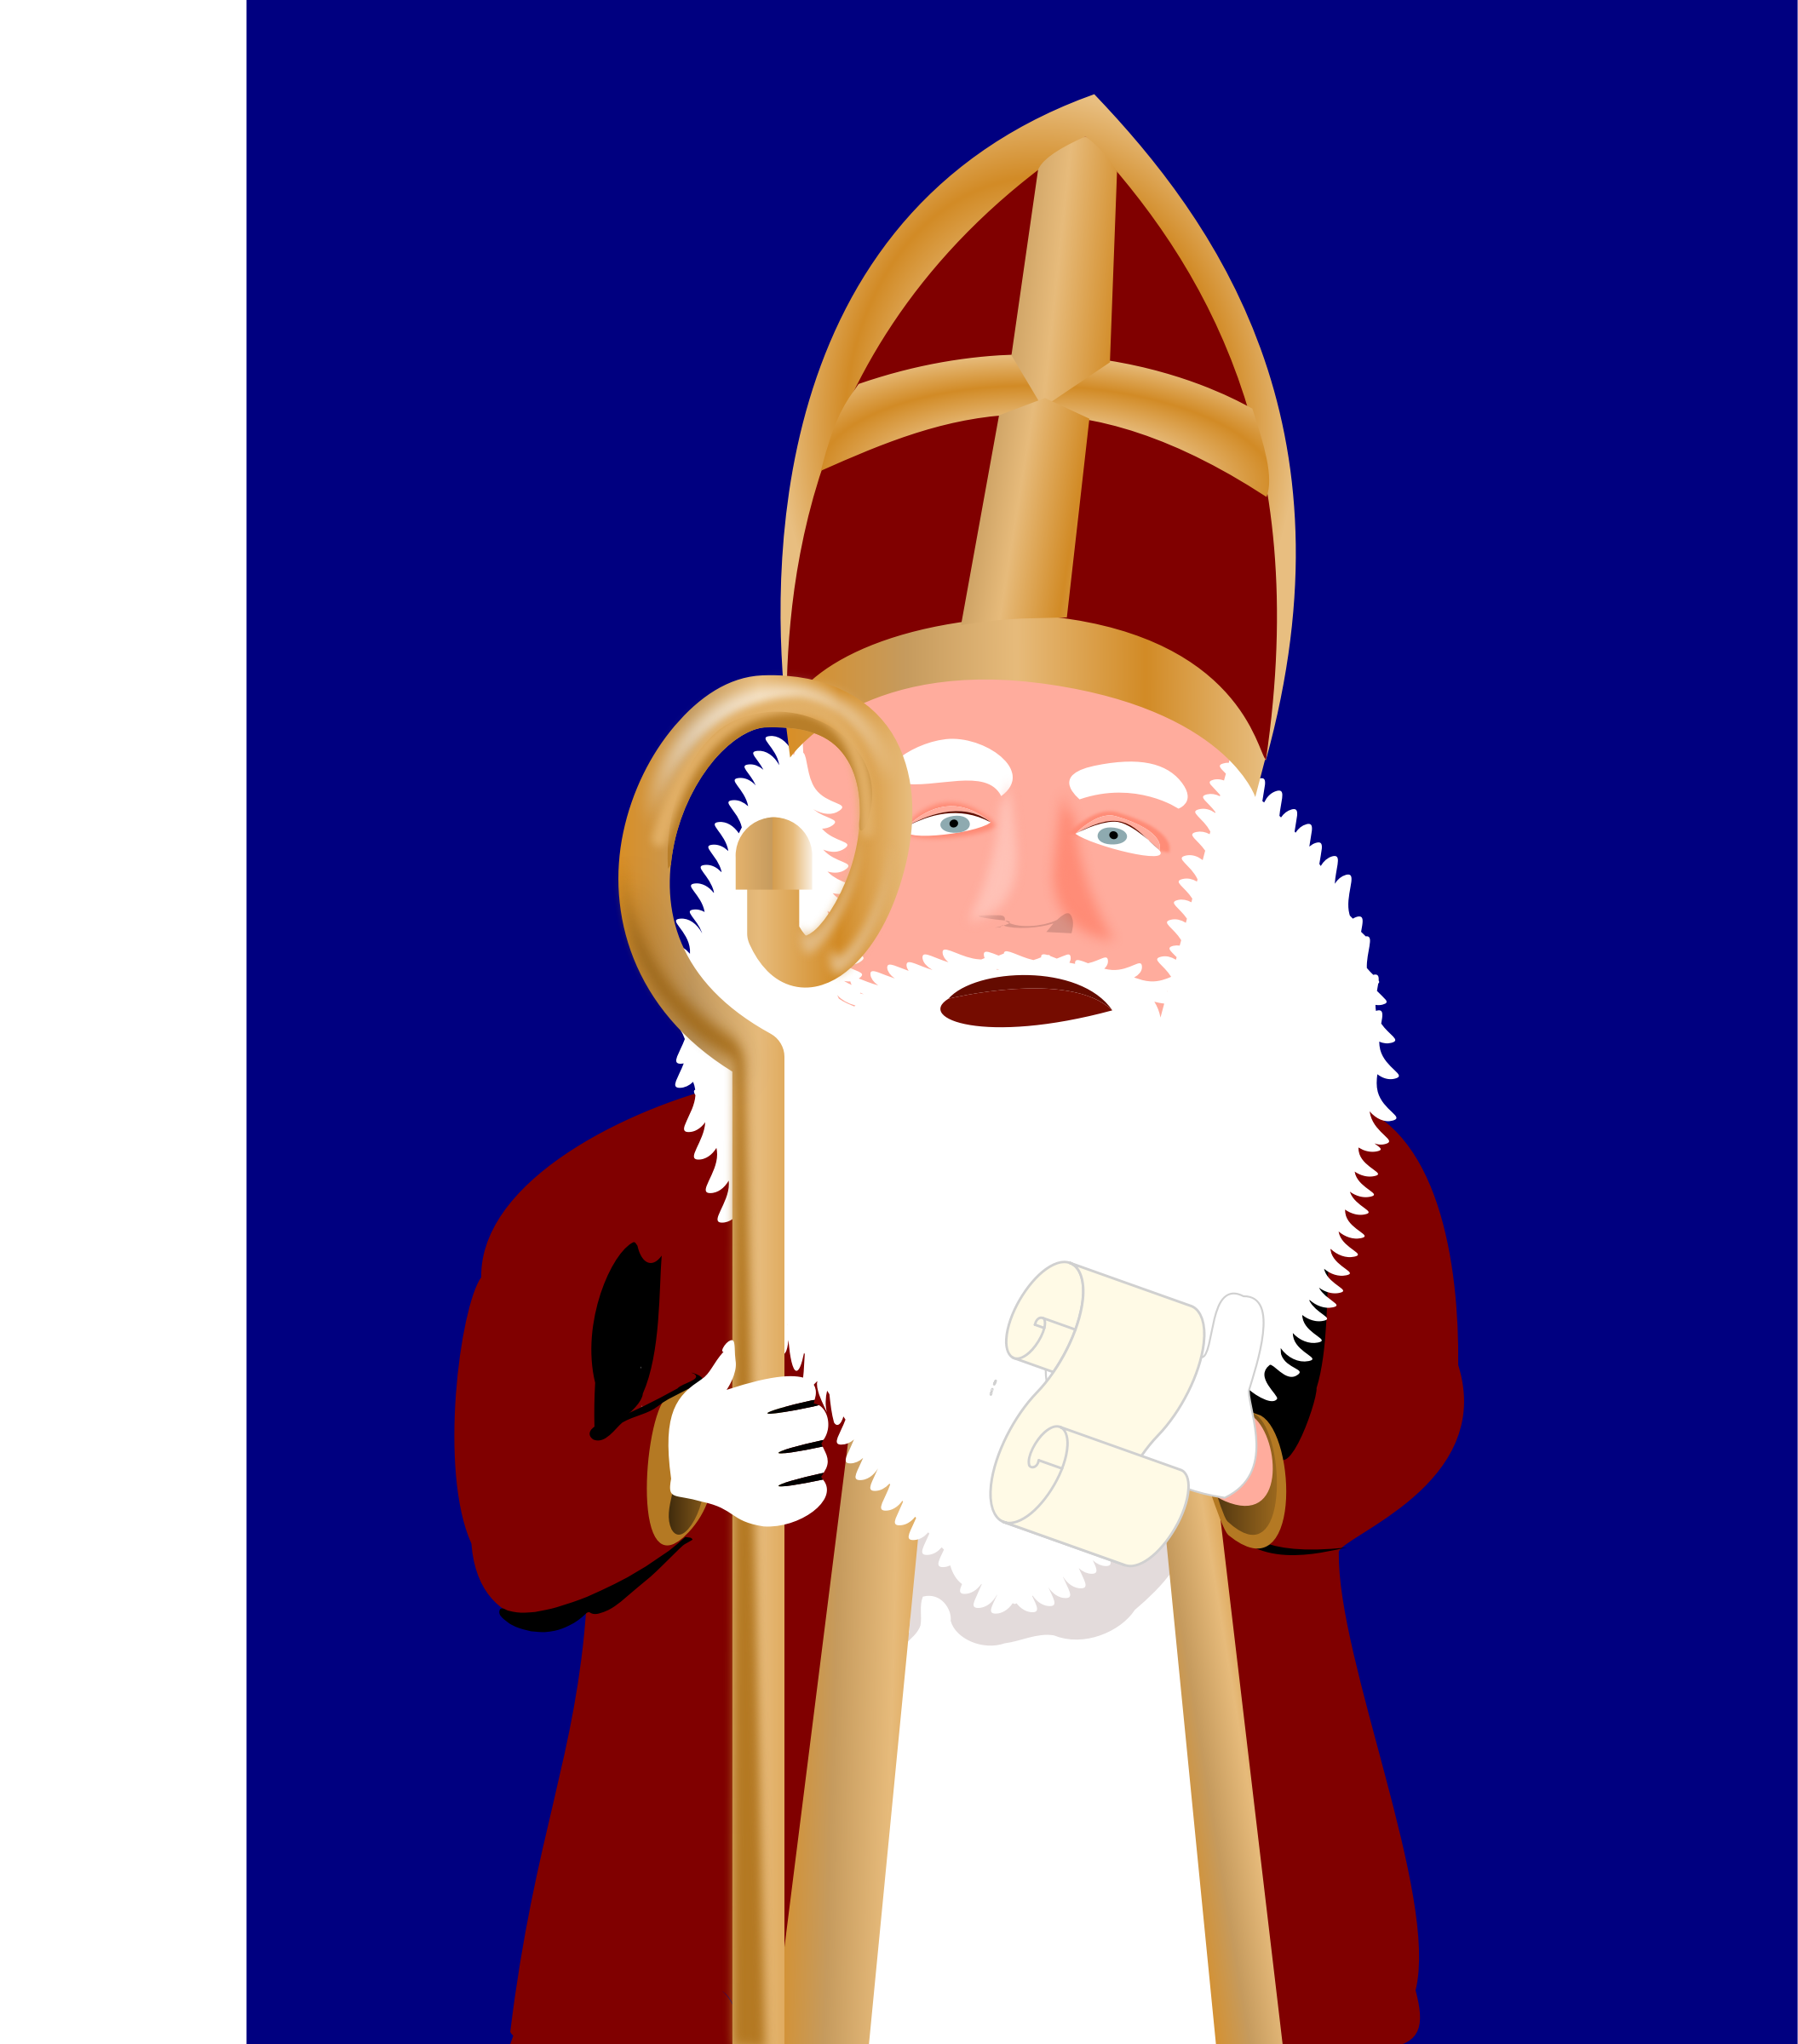 Administrating Sinterklaas by rdevries